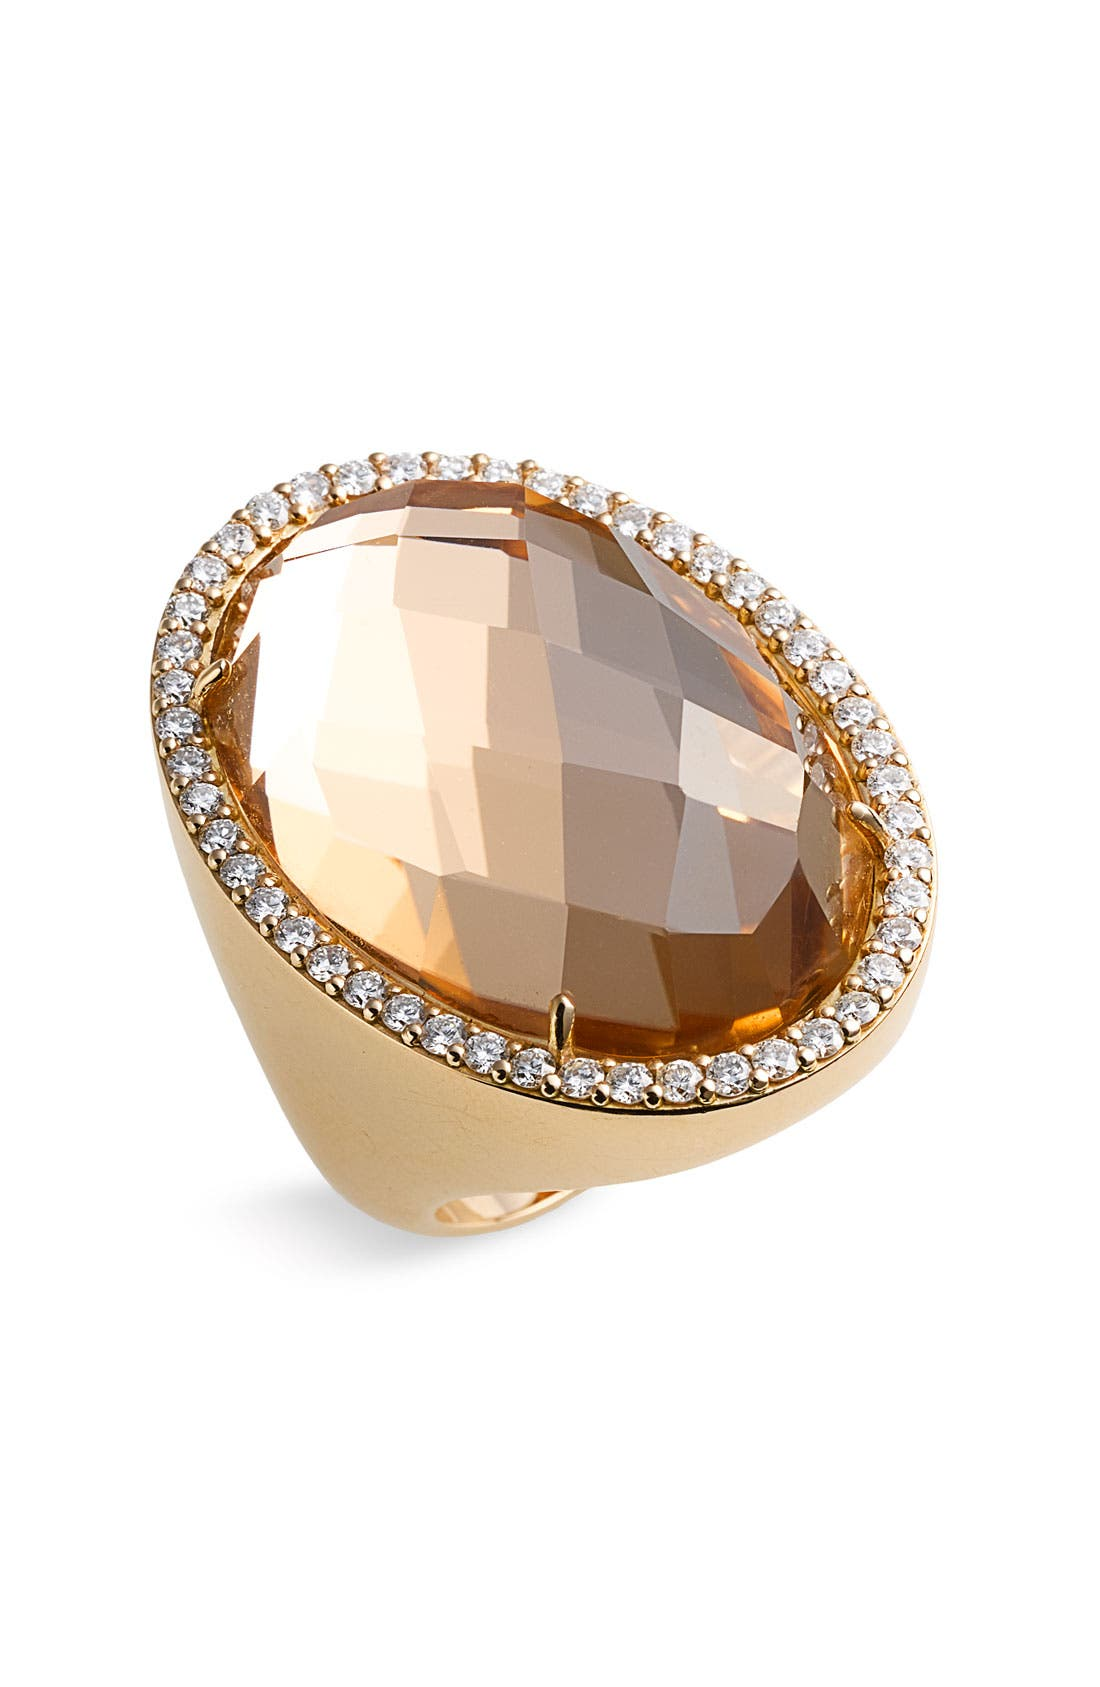 Main Image - Roberto Coin Rock Crystal & Diamond Statement Ring